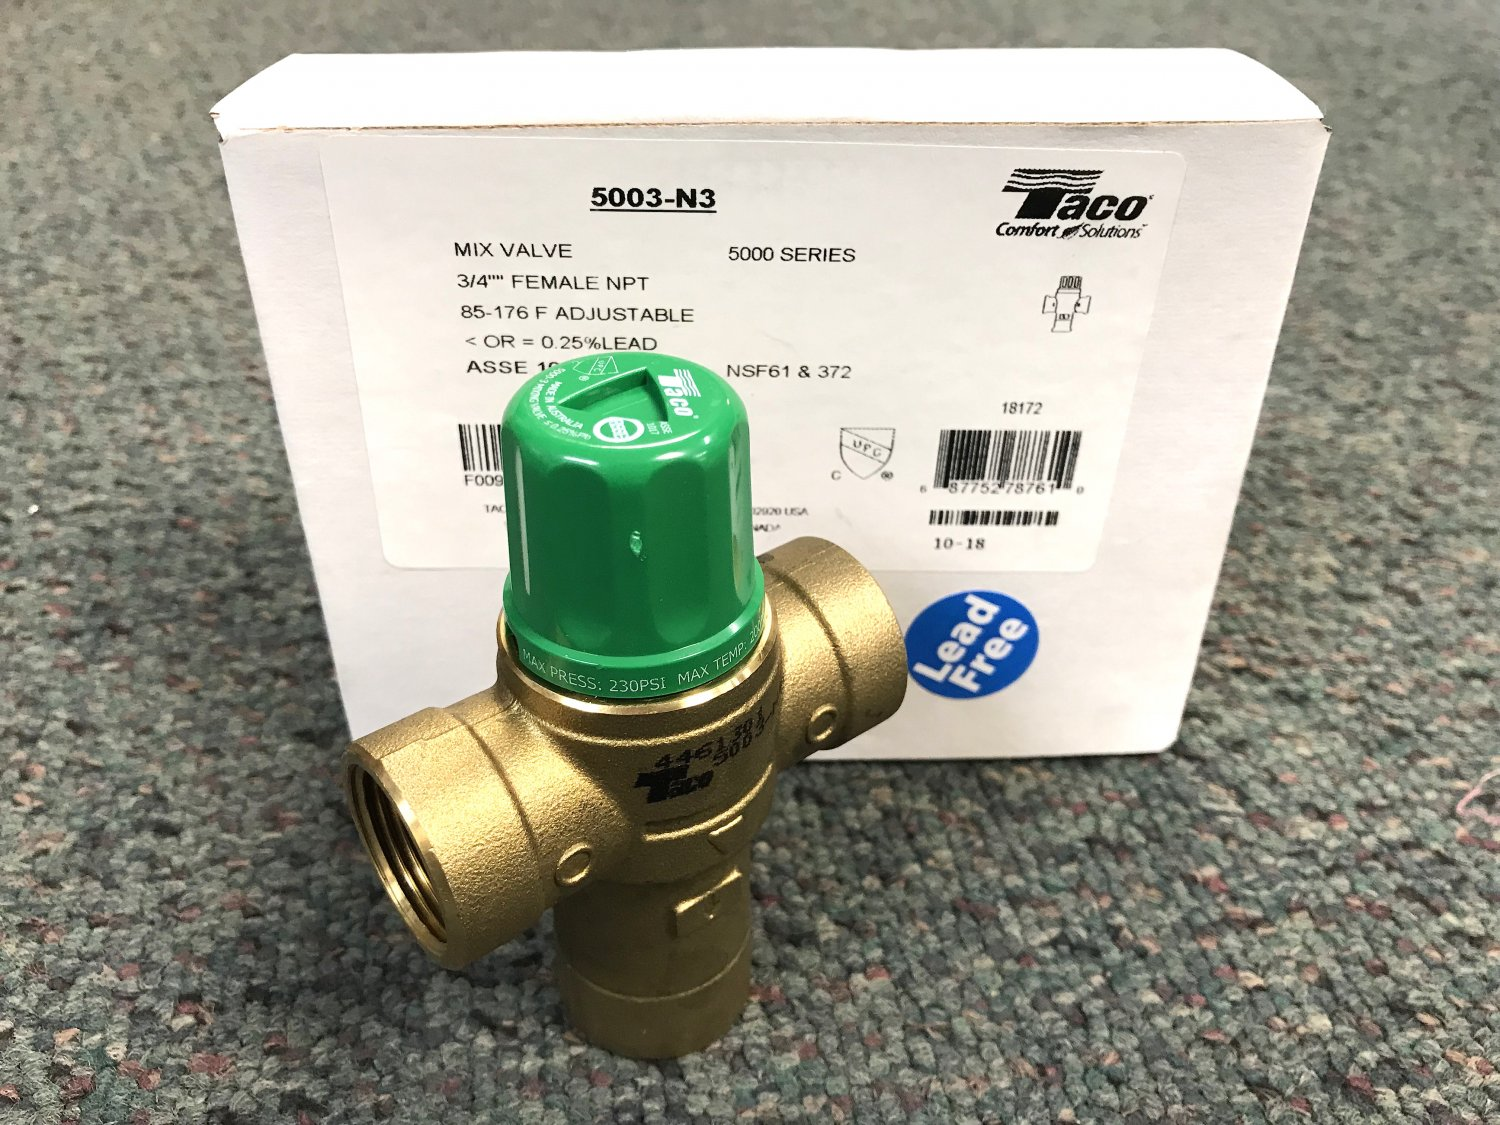 Taco 3 4 Npt Female Outlet Lead Free Mixing Valve 5003 N3